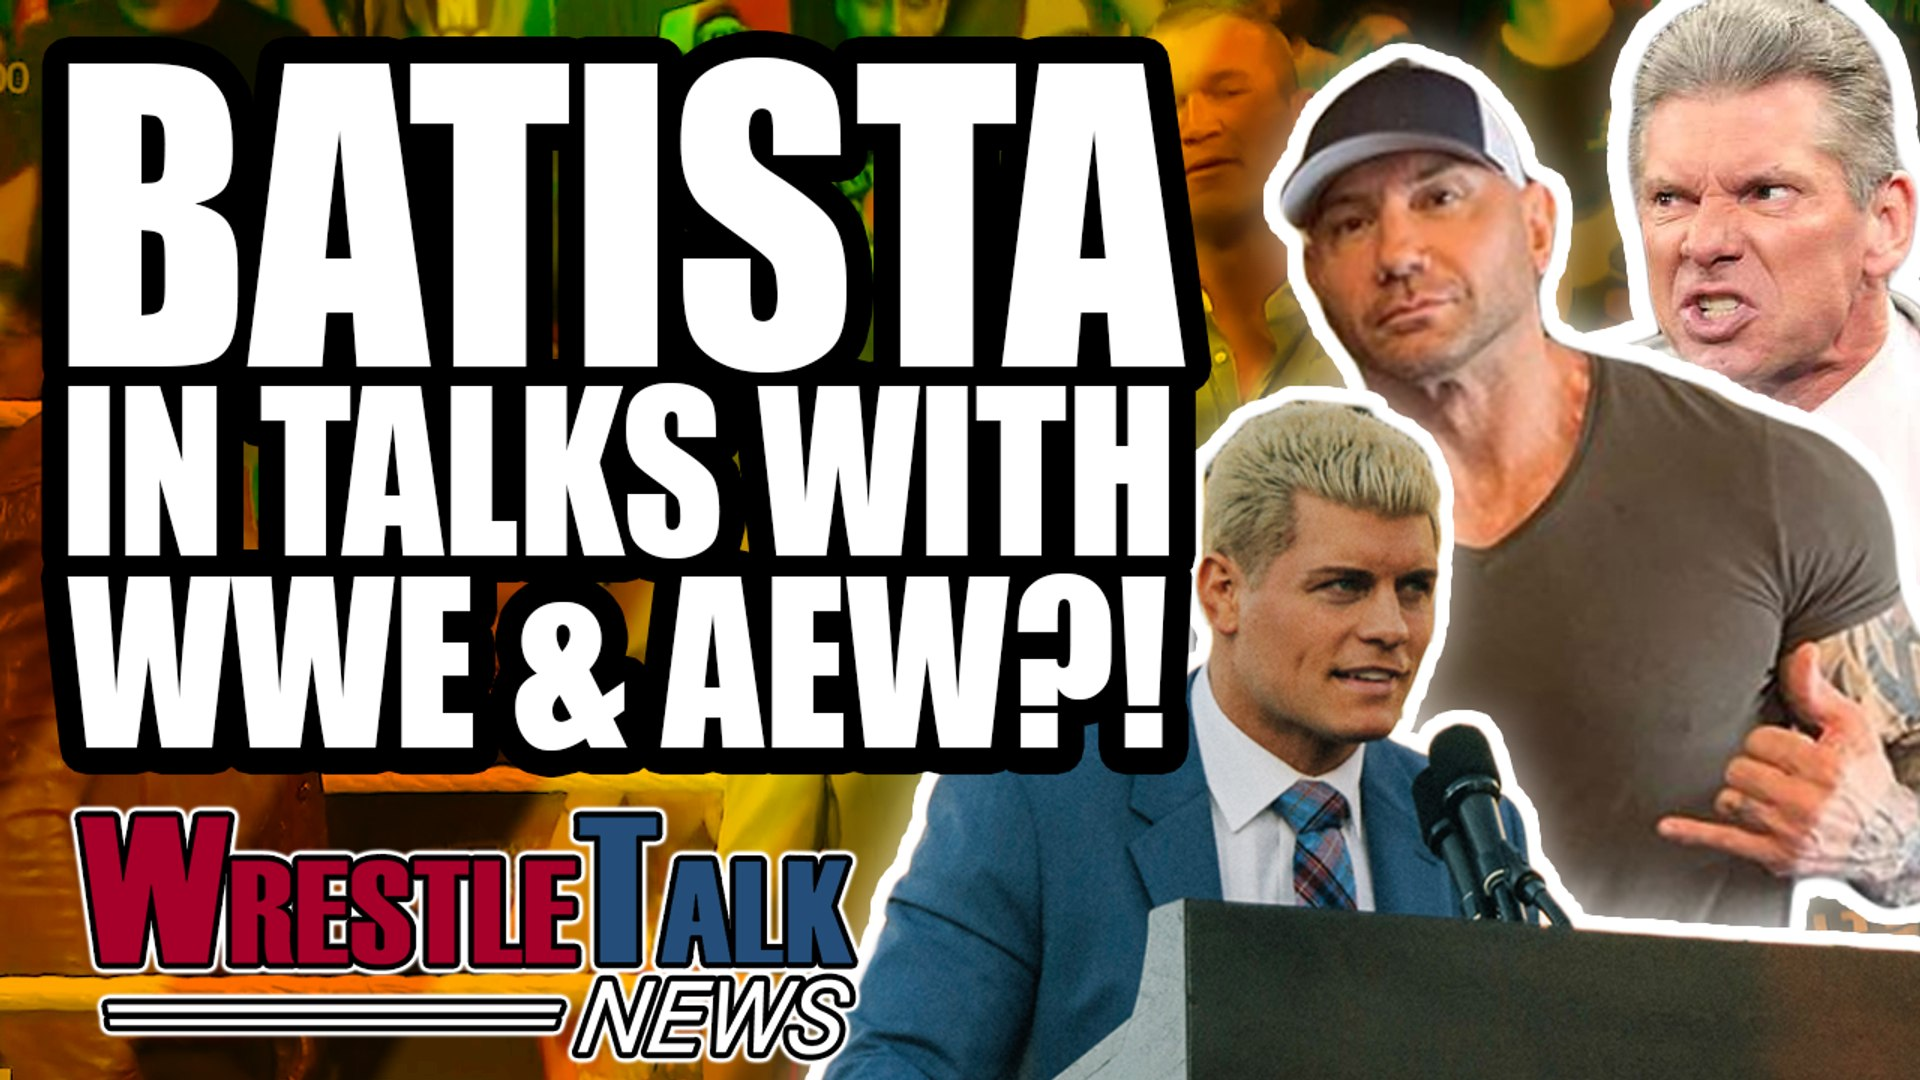 Batista In Talks With WWE & AEW?! AEW SELL OUT In 4 Minutes! | WrestleTalk News Feb. 2019